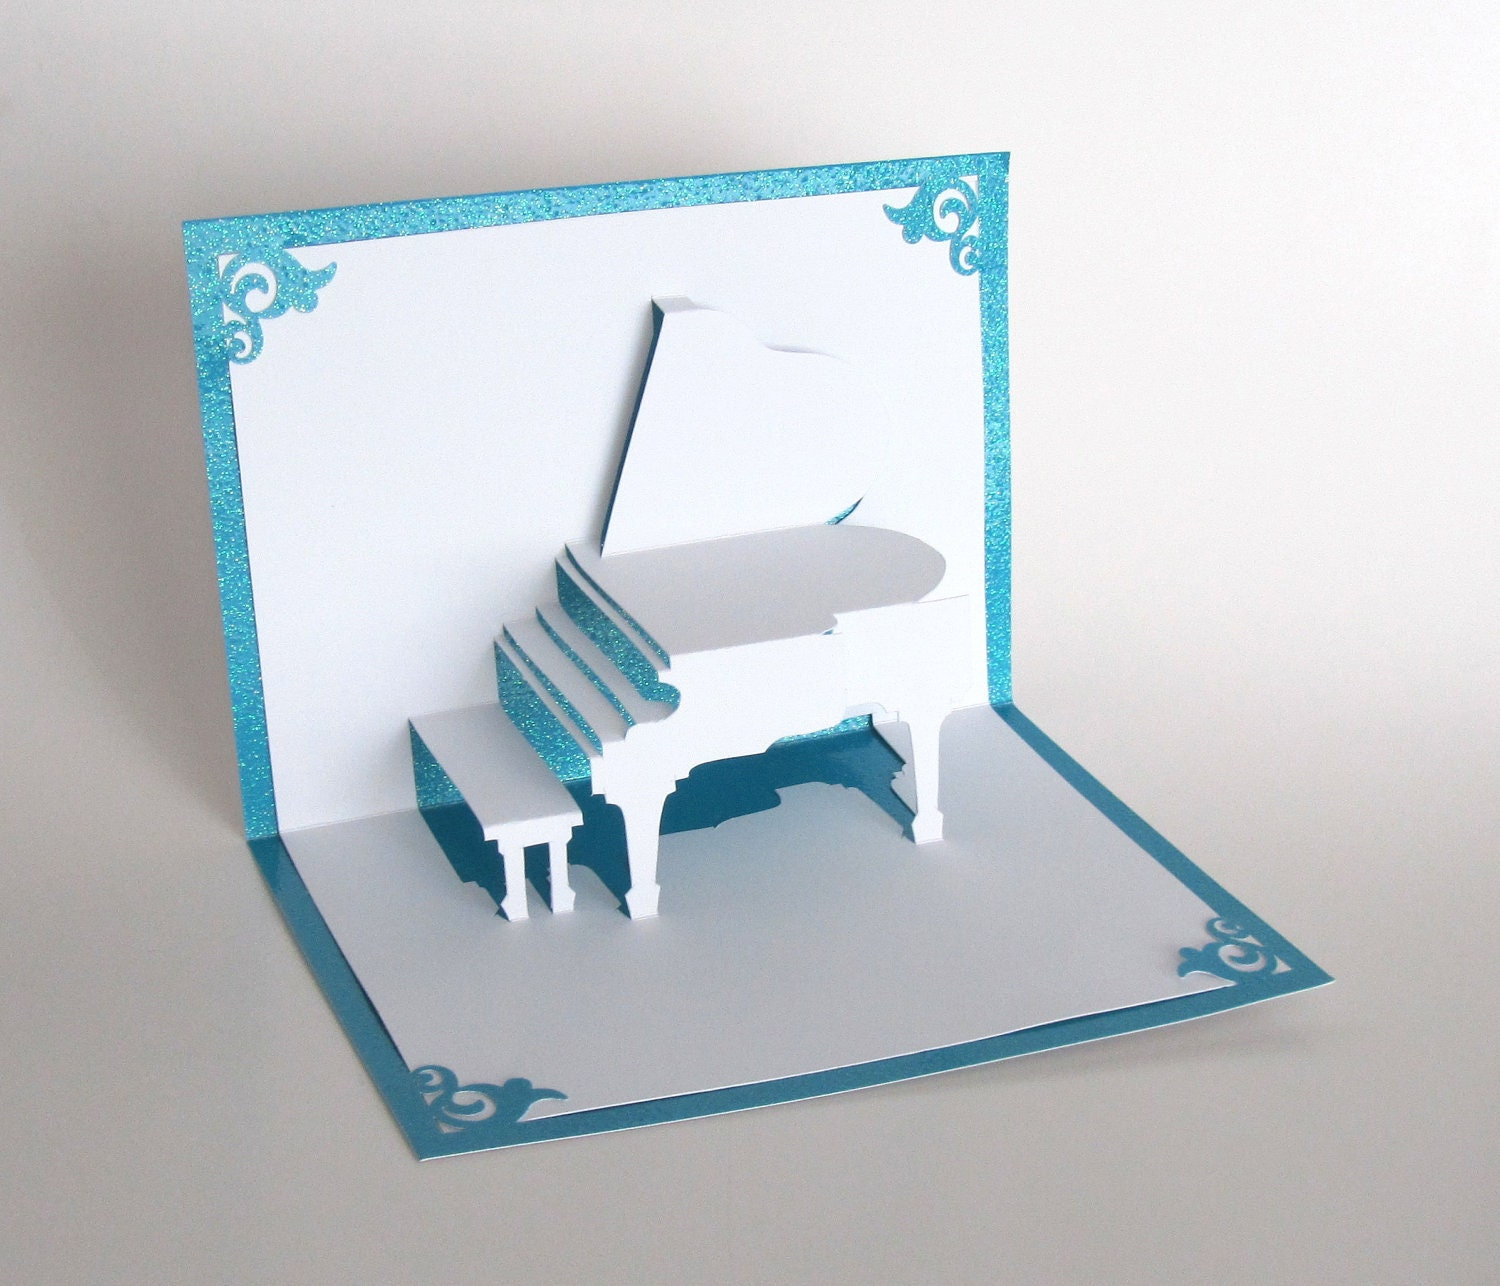 Awesome Popup Card Making Ideas Part - 11: ?zoom